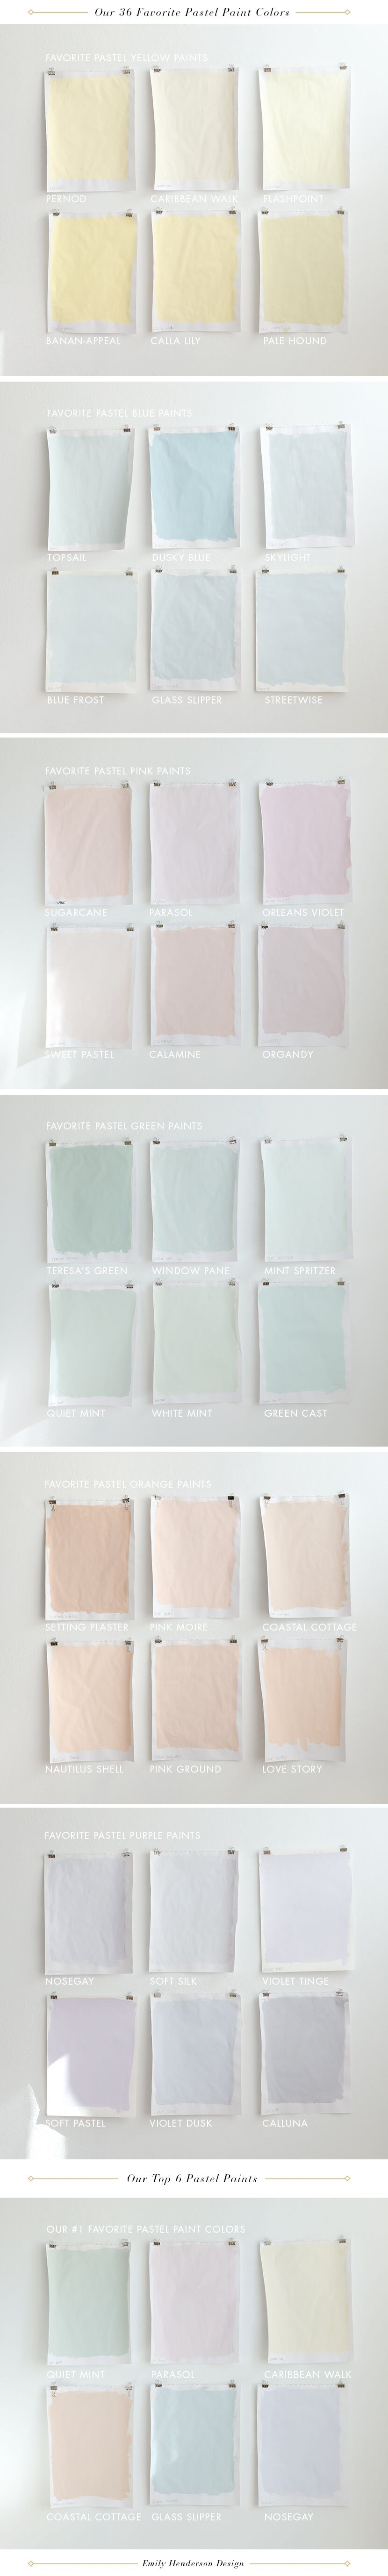 Emily Henderson\u0027s 36 all time favorite pastel paints for the home ...